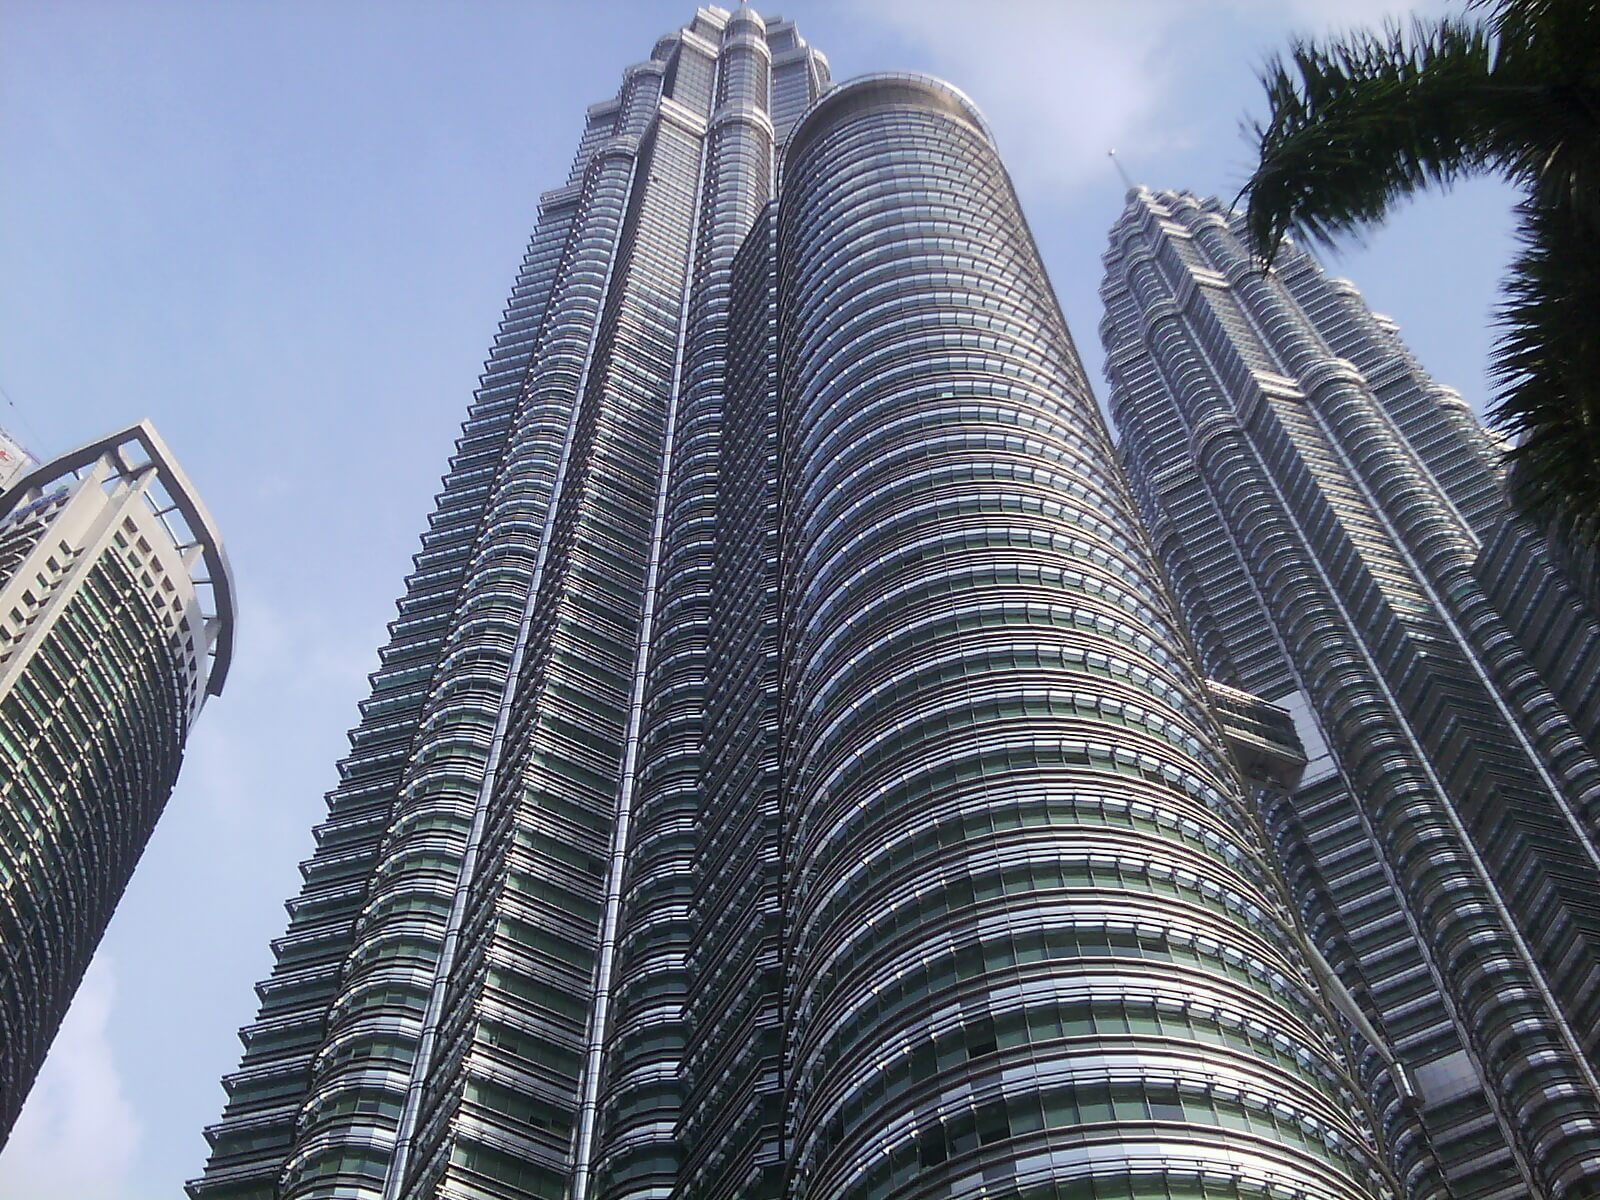 Picture of petronas towers taken from underneath